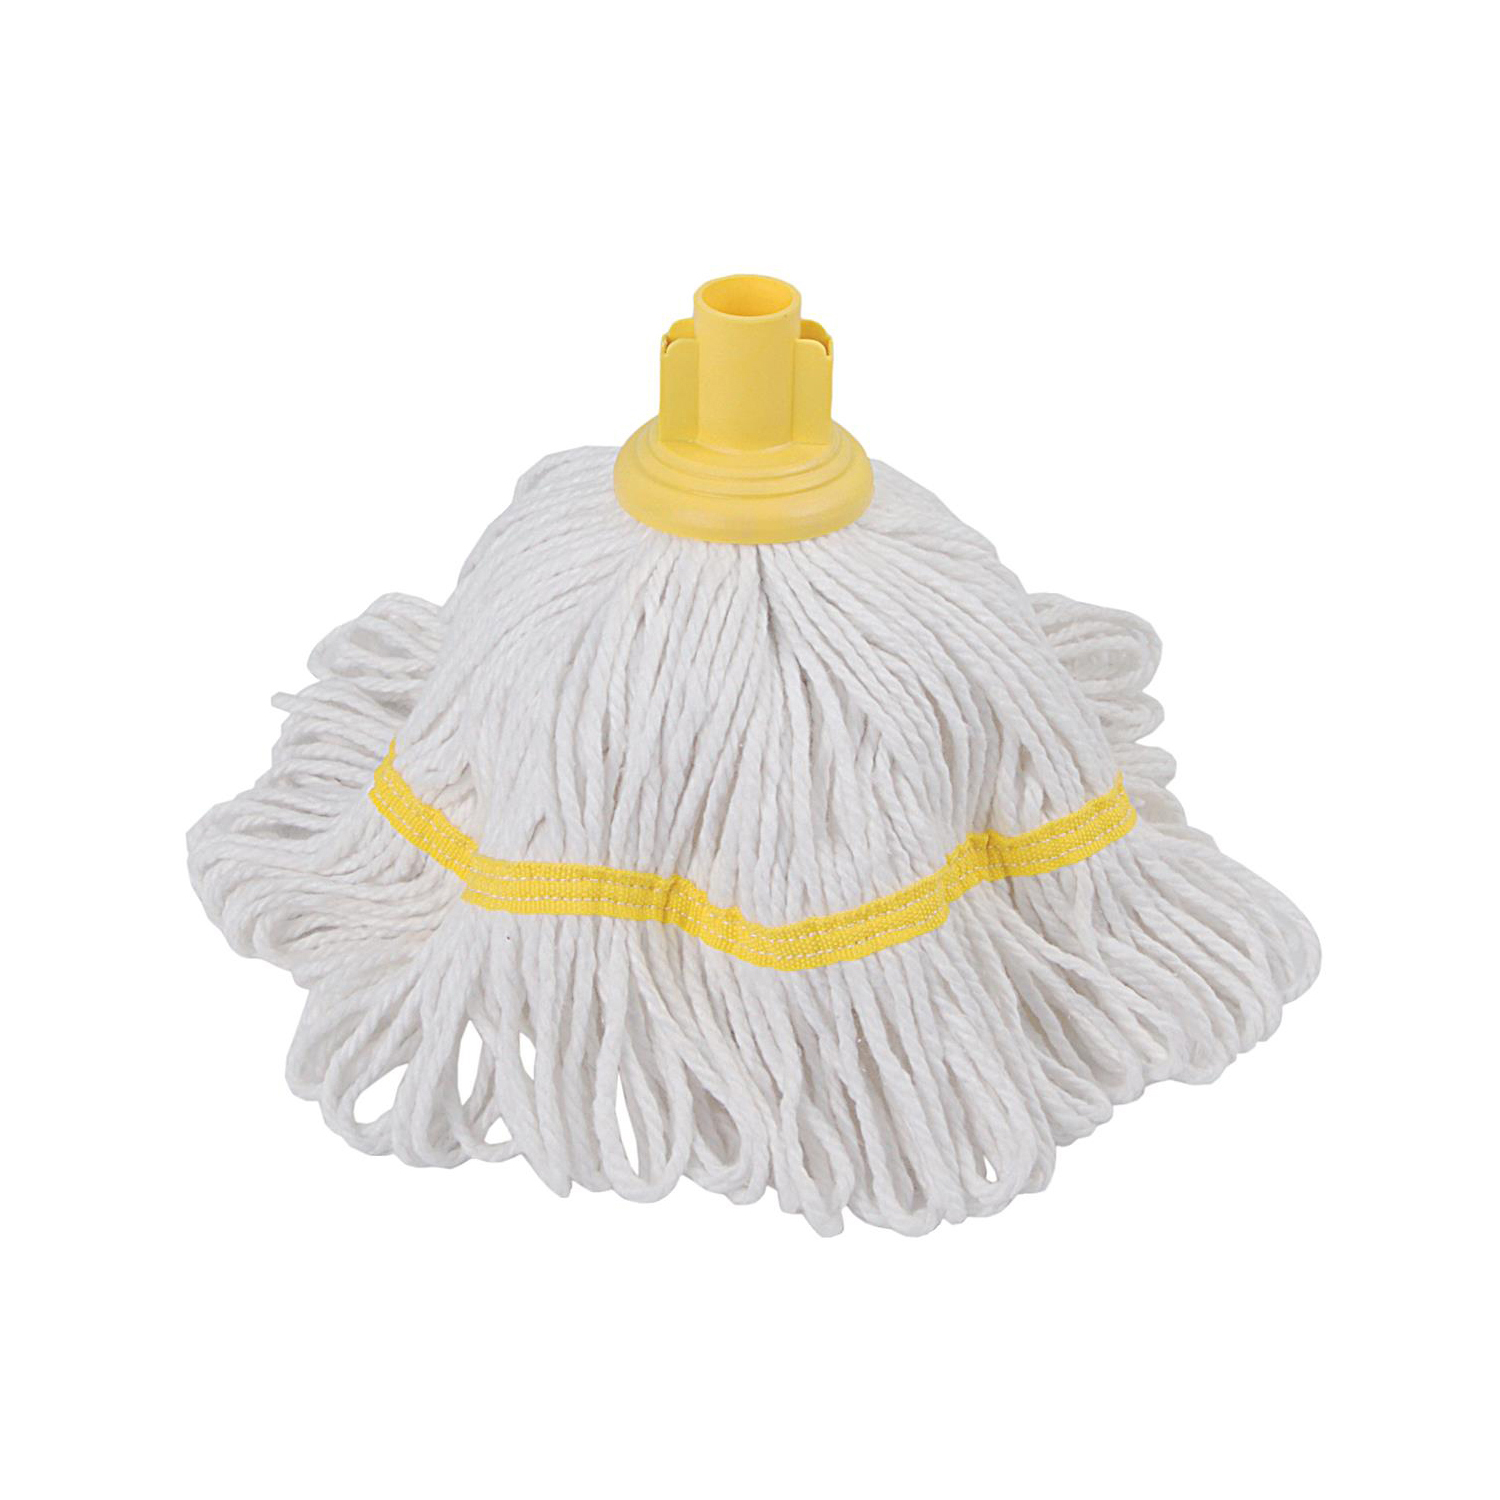 Mop heads Robert Scott & Sons Hygiemix T1 Socket Cotton & Synthetic Colour-coded Mop 250g Yellow Ref MHH250Y